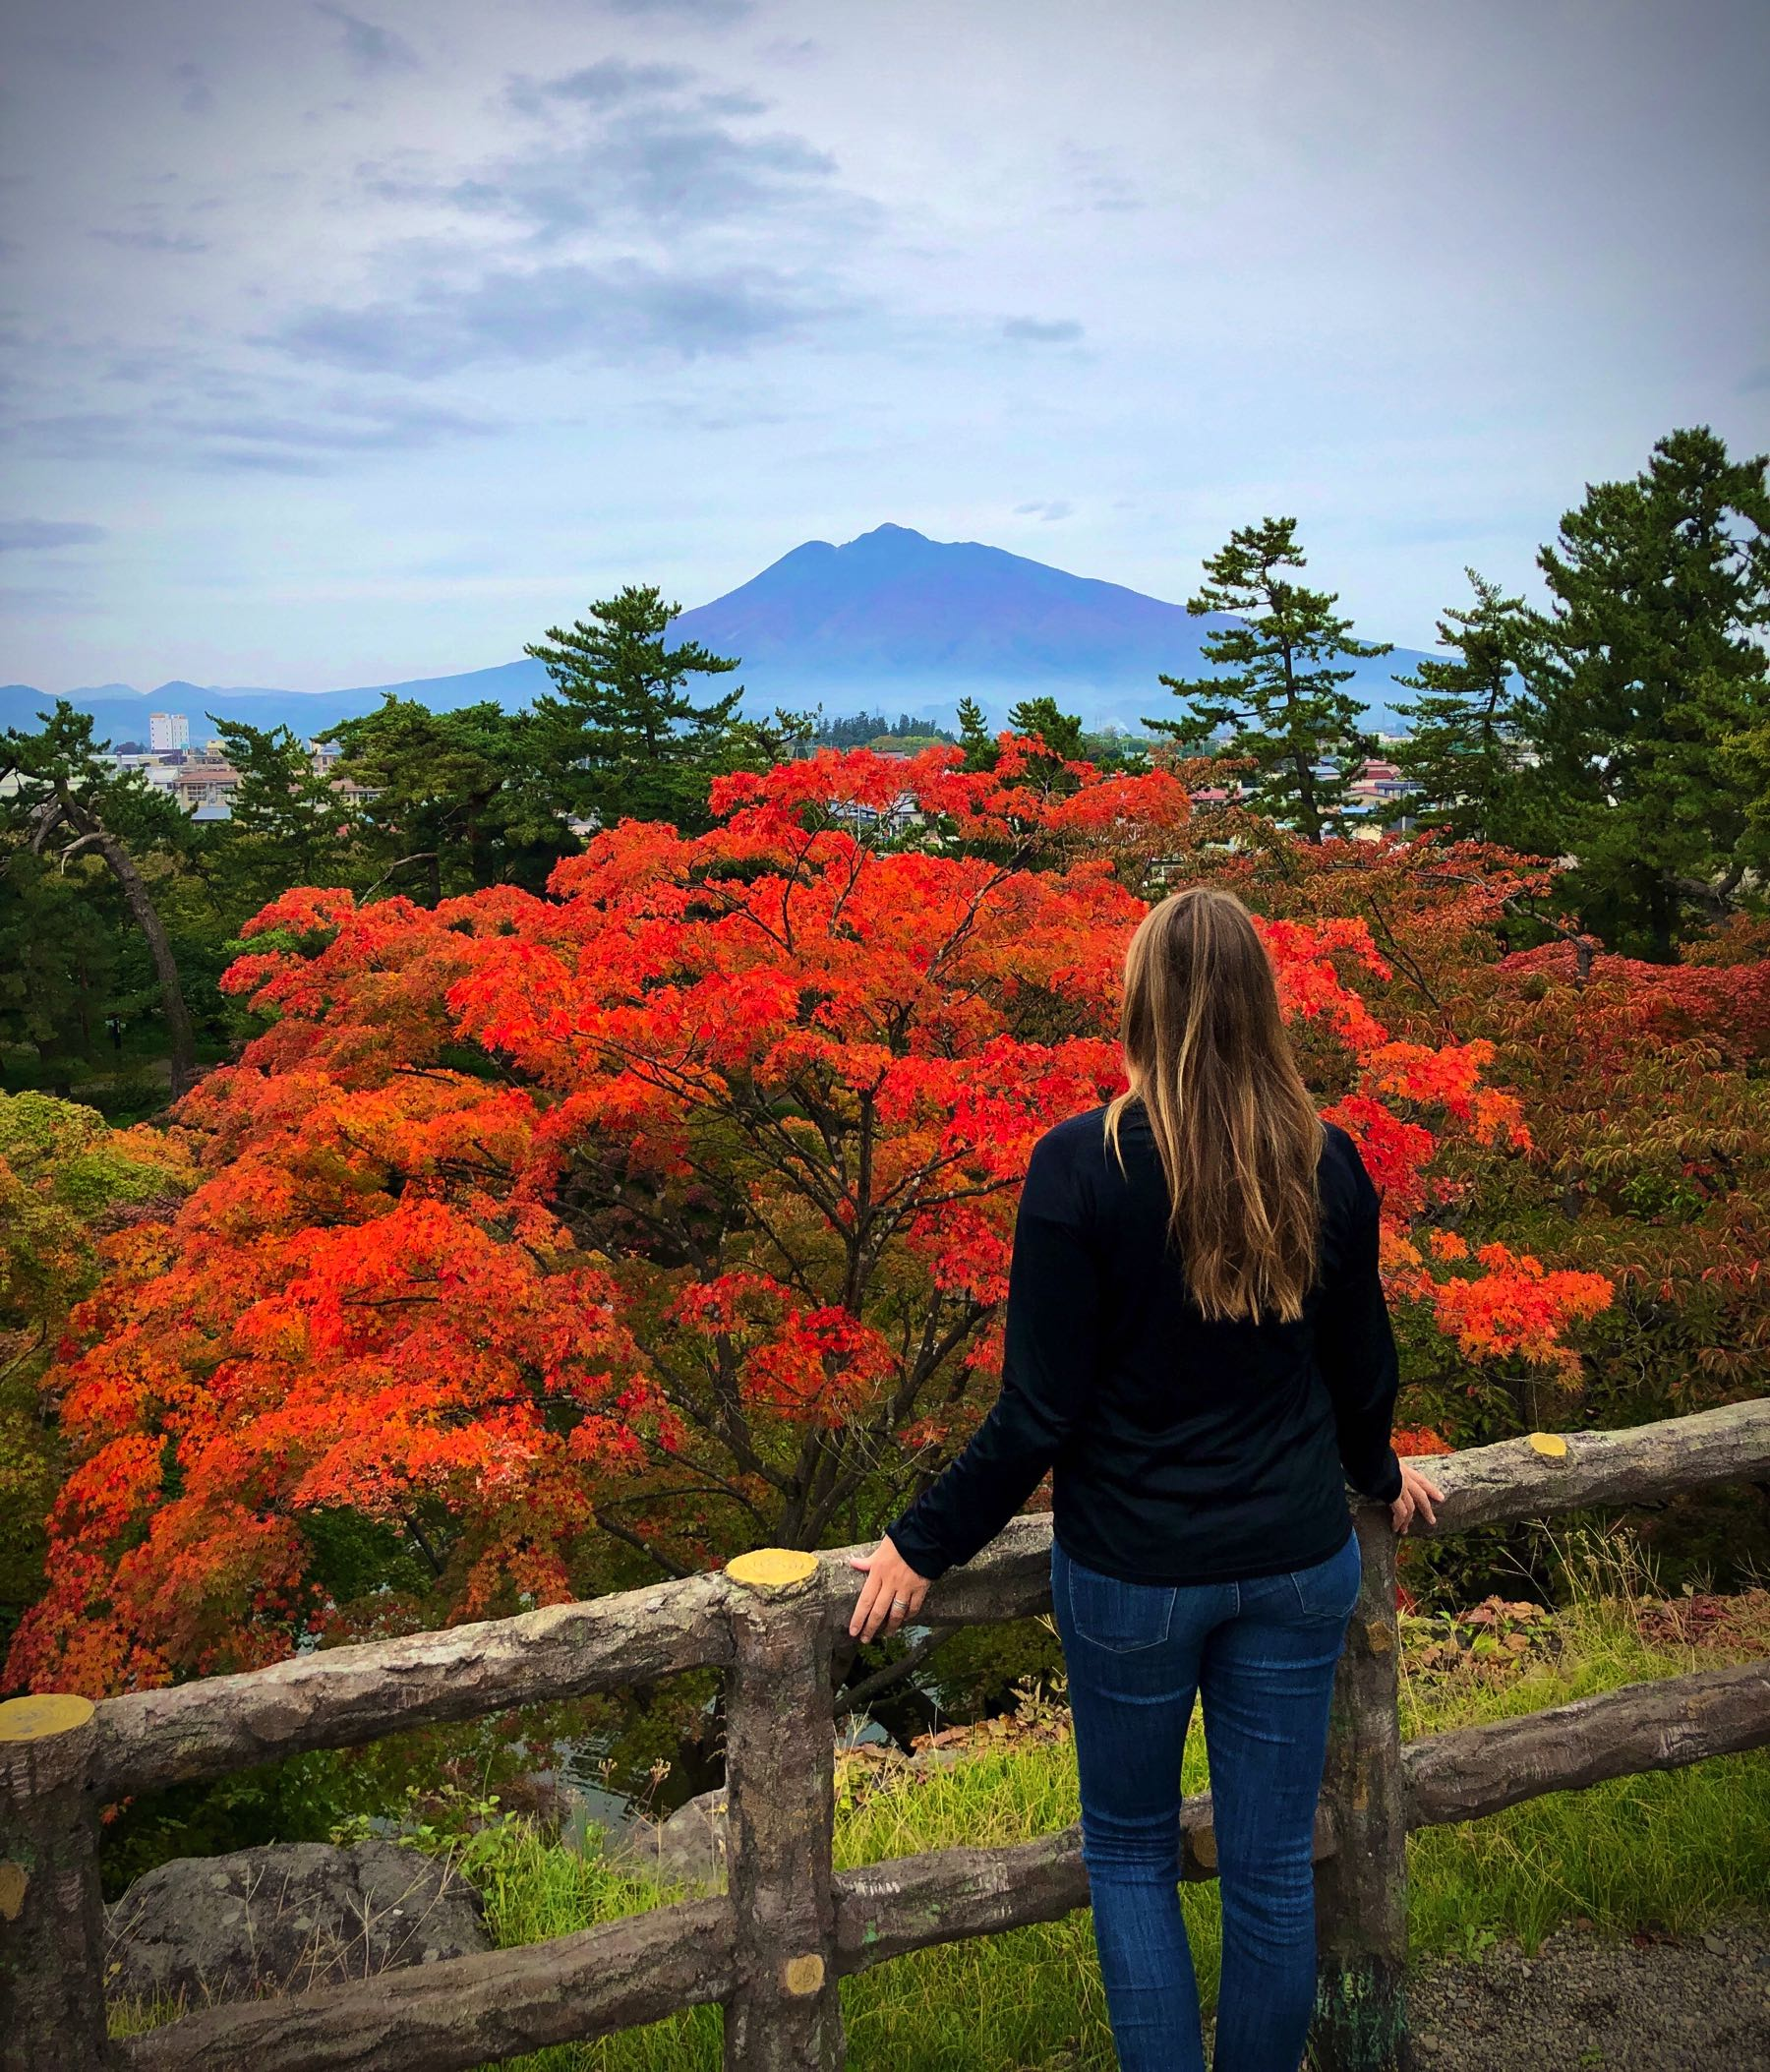 Amazing view of the volcano and autumn colours in Hirosaki Park